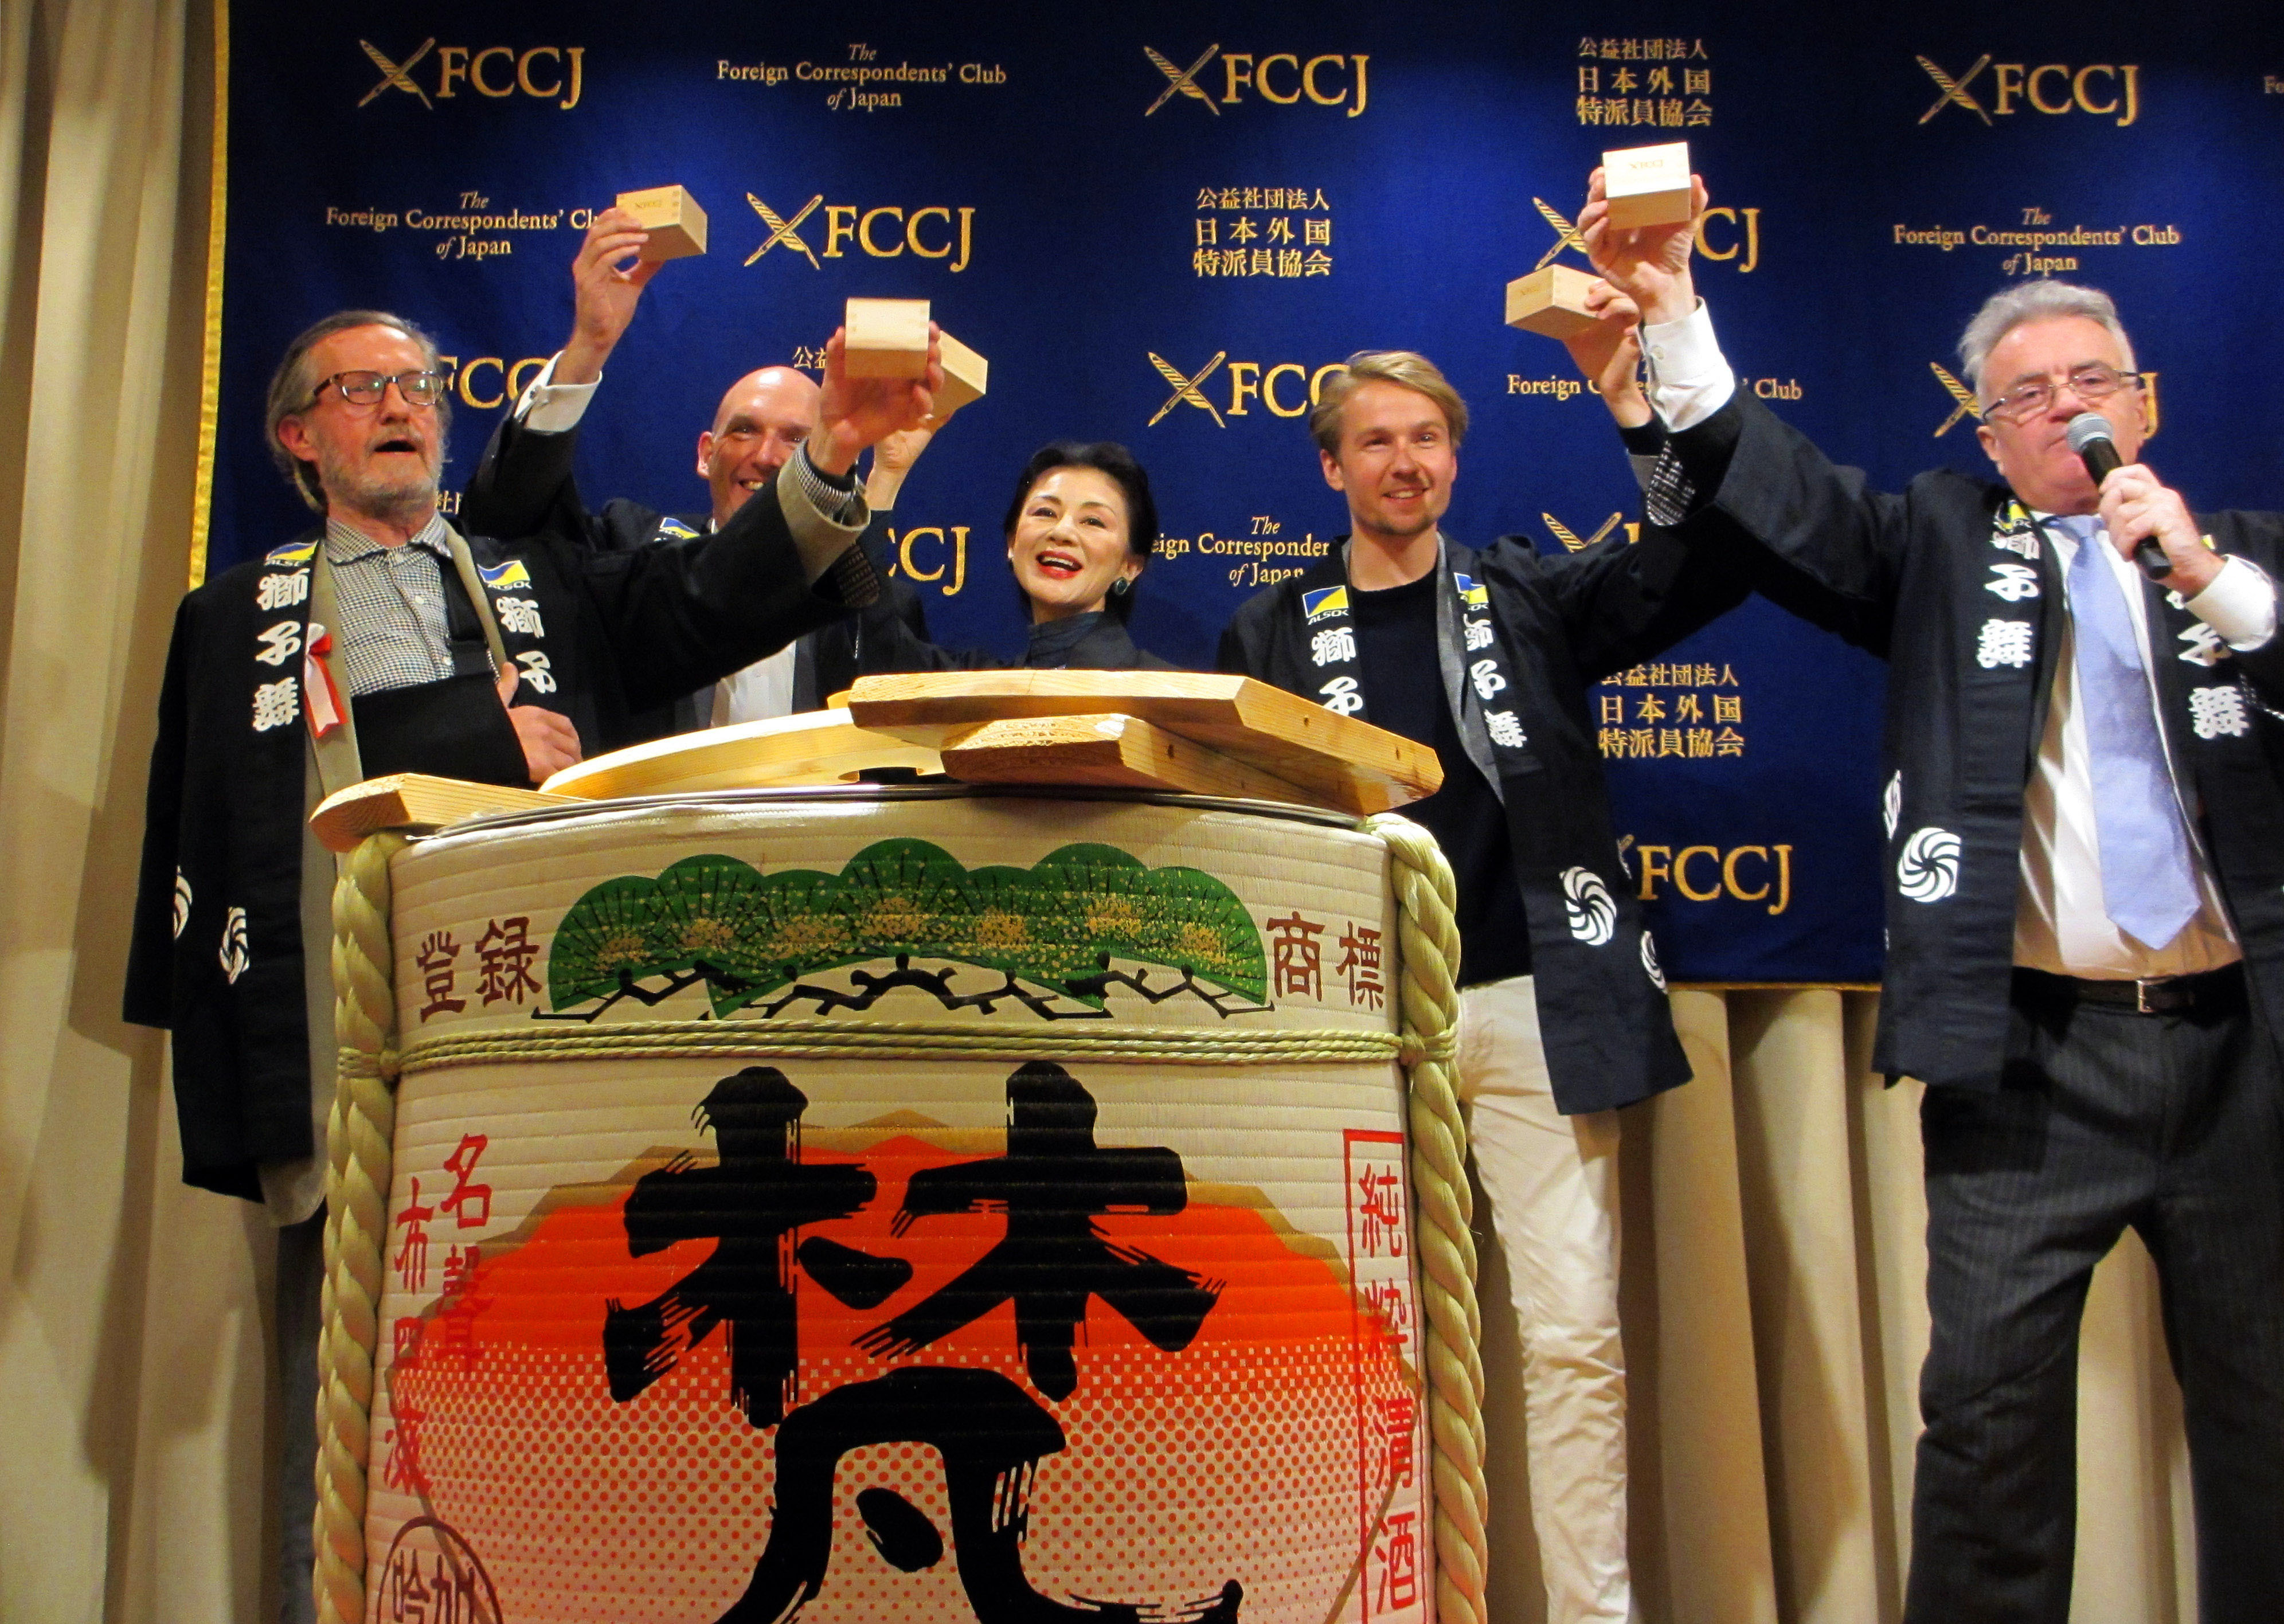 "Peter Langan (far left), president of The Foreign Correspondents' Club of Japan (FCCJ), leads a toast at a kagamiwari (breaking open a sake barrel) ceremony with (from left) FCCJ General Manager Marcus Fishenden; Upper House lawmaker Mitsuko Ishii; journalist Bobbie van der List; and FCCJ Director Daniel Sloan at the FCCJ's ""Hacks & Flacks'' new year party at the Marunouchi Nijubashi Building on Jan. 25. 